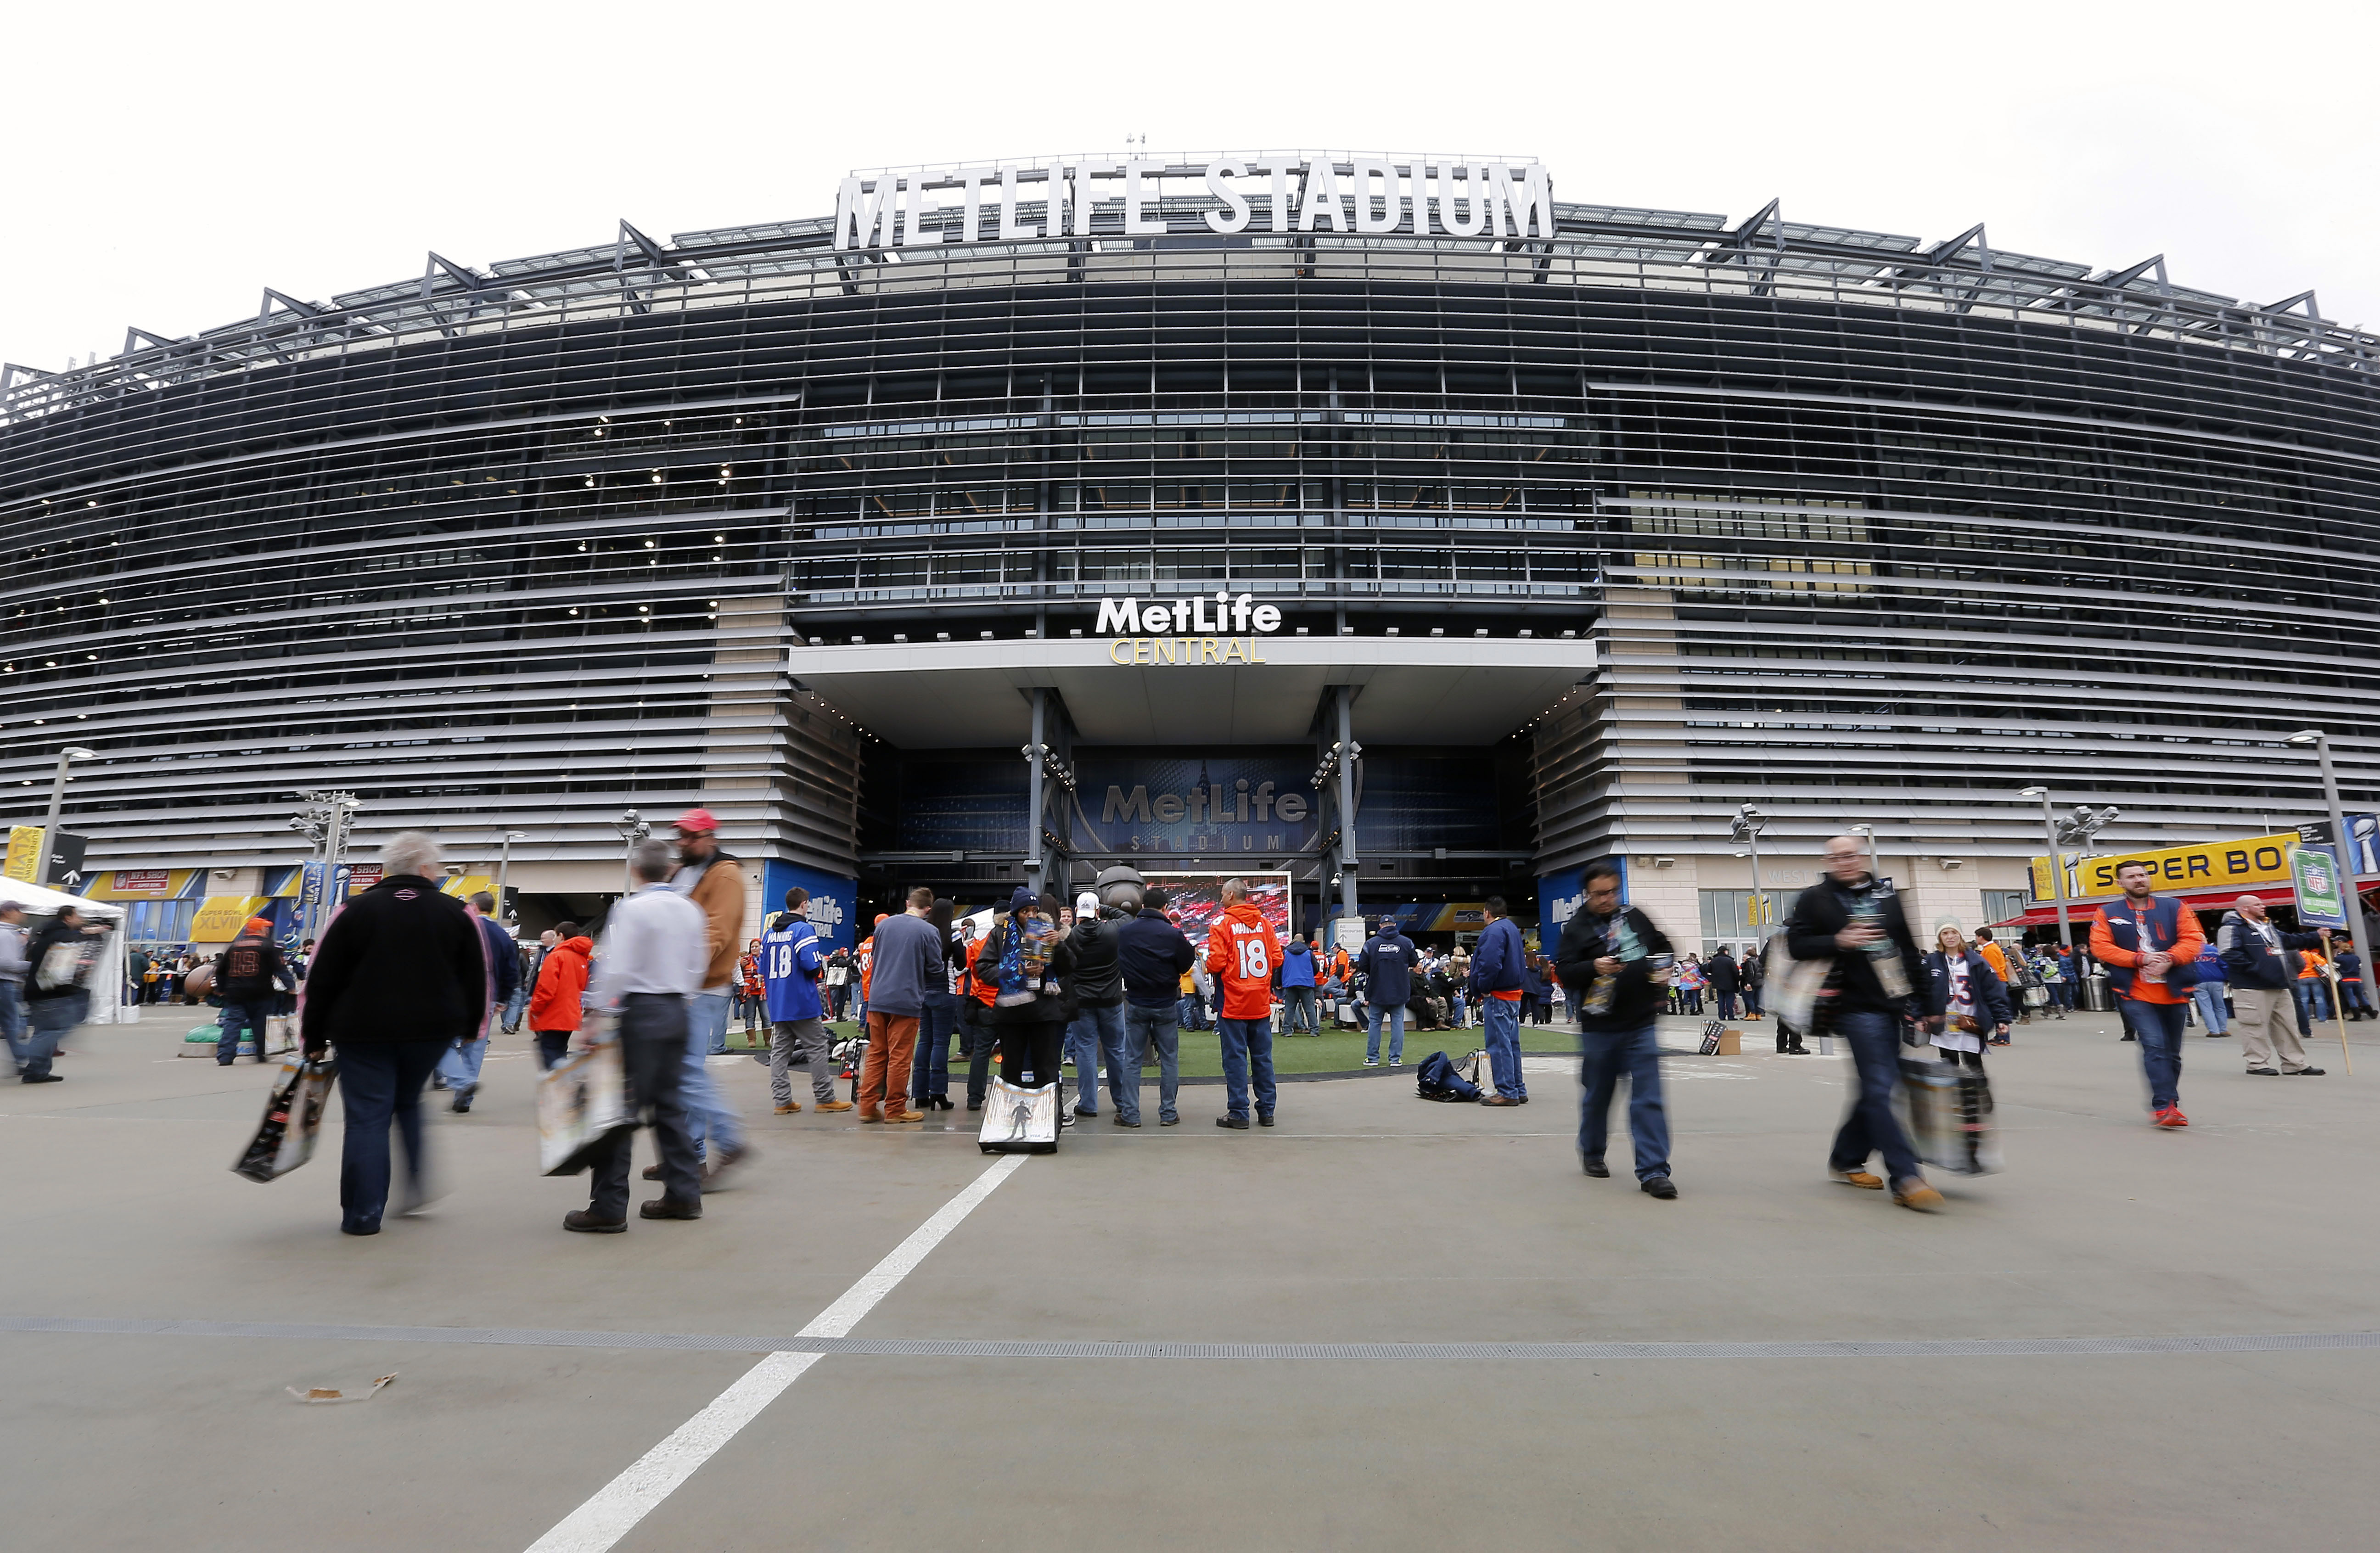 FILE - In this Feb. 2, 2014 file photo, fans arrive outside MetLife Stadium before the NFL Super Bowl XLVIII football game between the Seattle Seahawks and the Denver Broncos in East Rutherford, N.J.  The latest cost of the new National Stadium for the 20